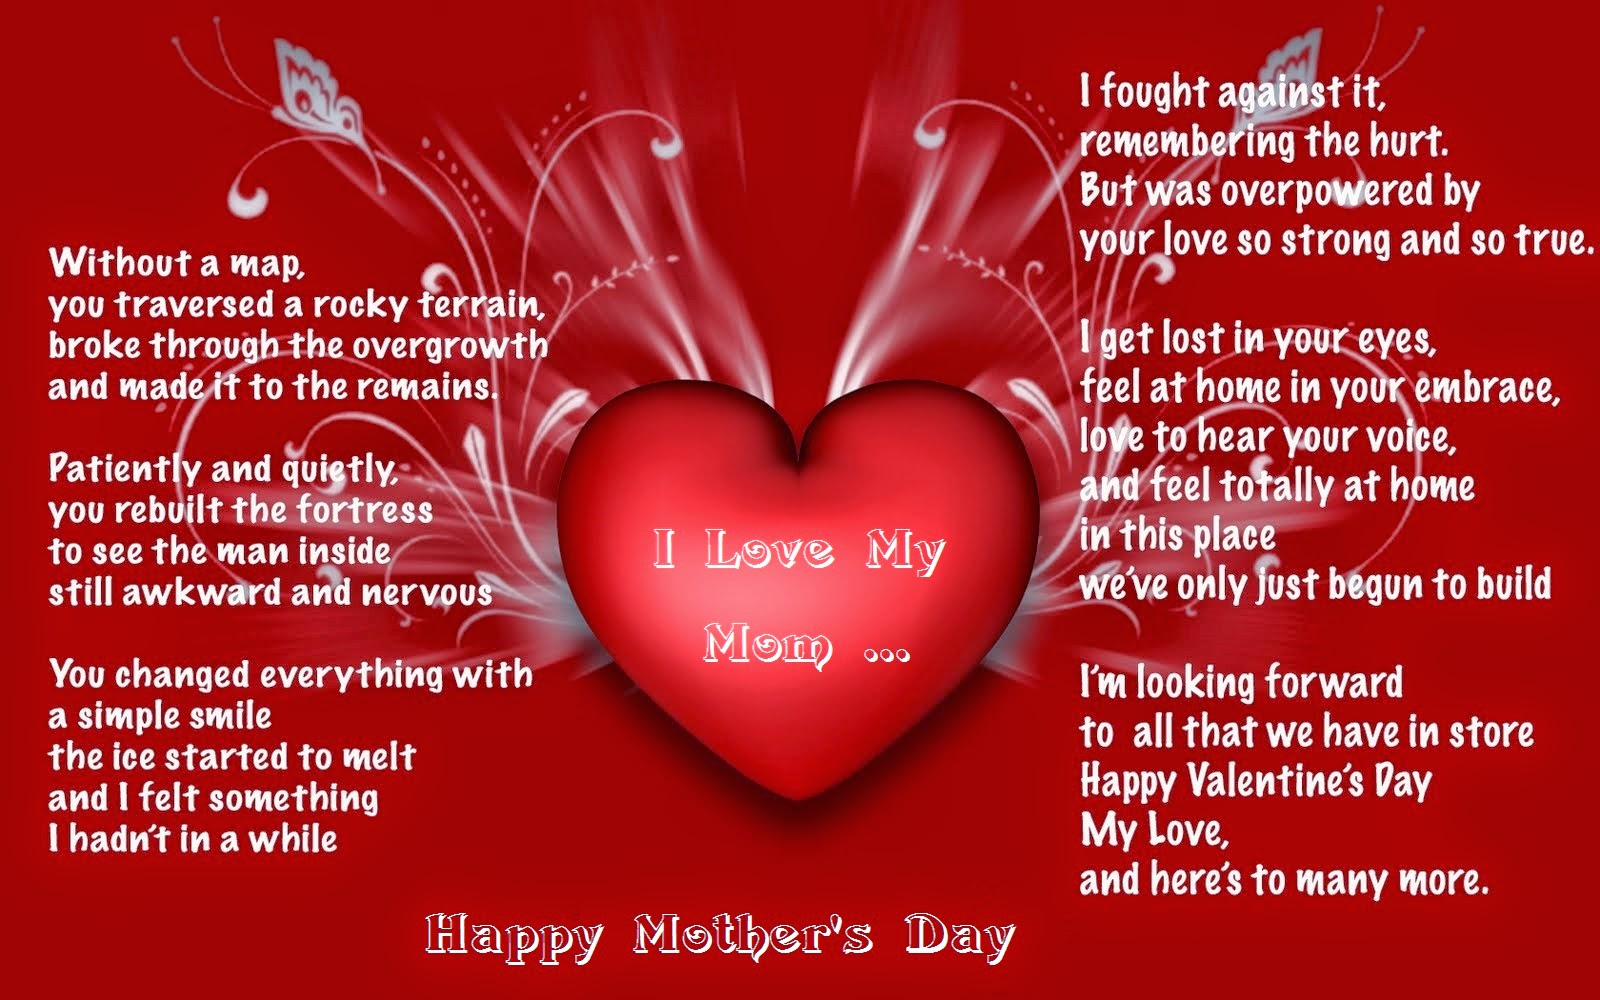 Happy Mothers Day poem 2014